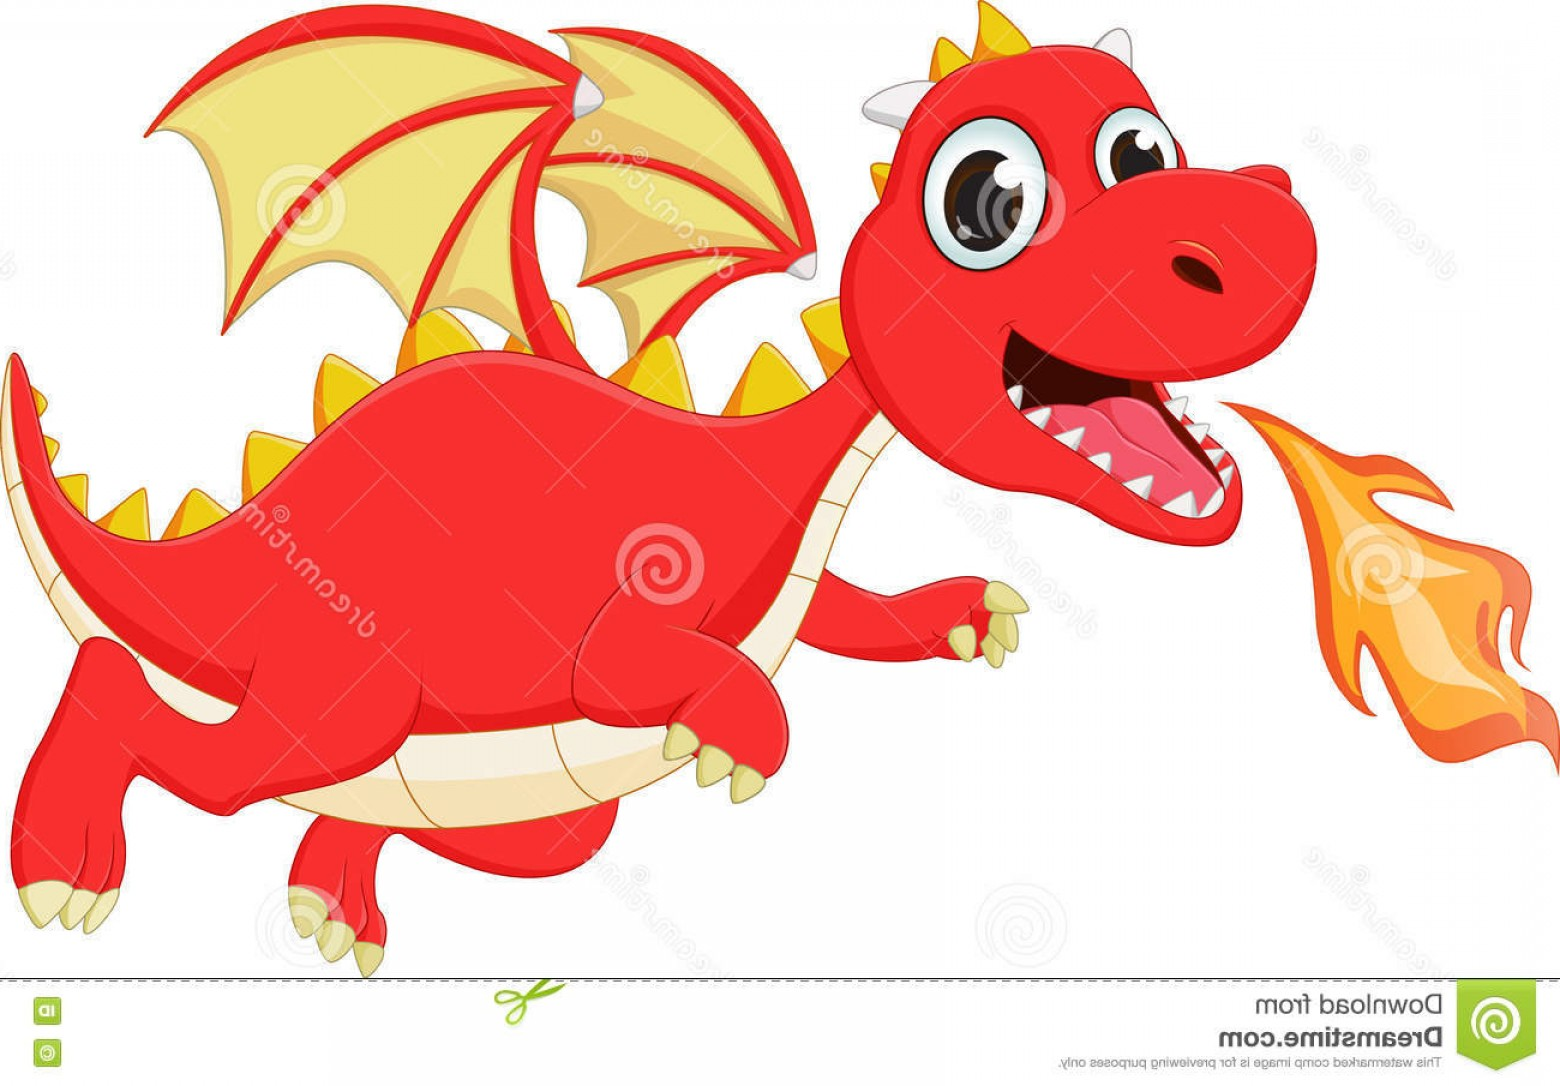 Dragon Fire Vector: Stock Illustration Funny Cartoon Flying Dragon Fire Vector Illustration Isolated White Image